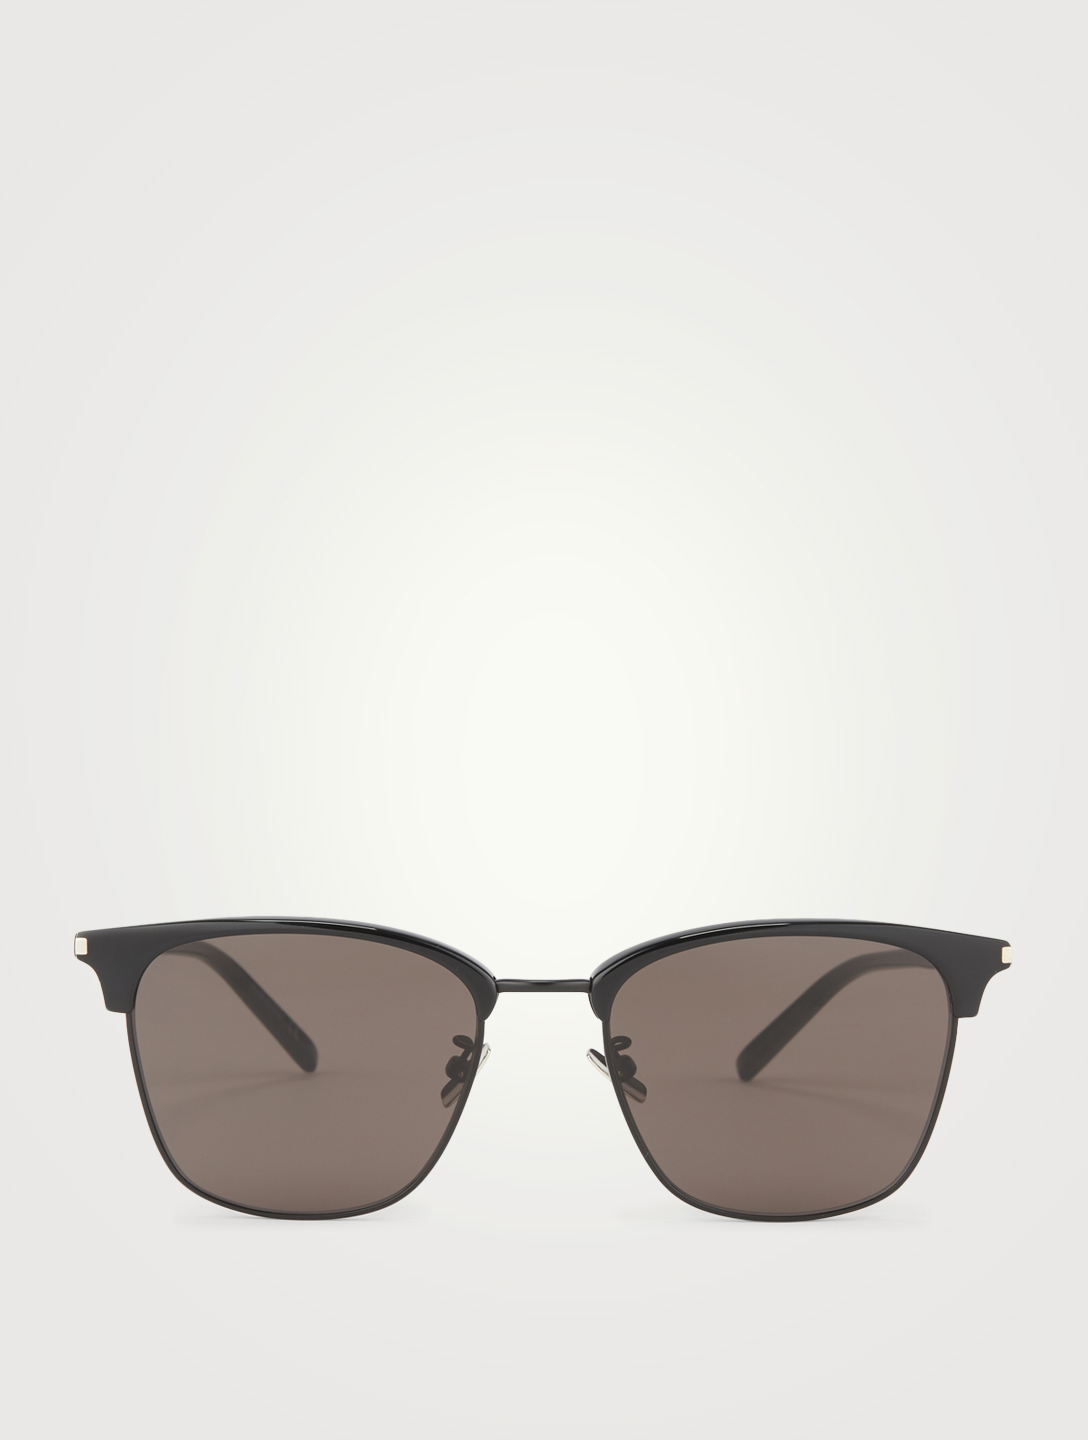 SAINT LAURENT SL 326 Sunglasses Men's Black